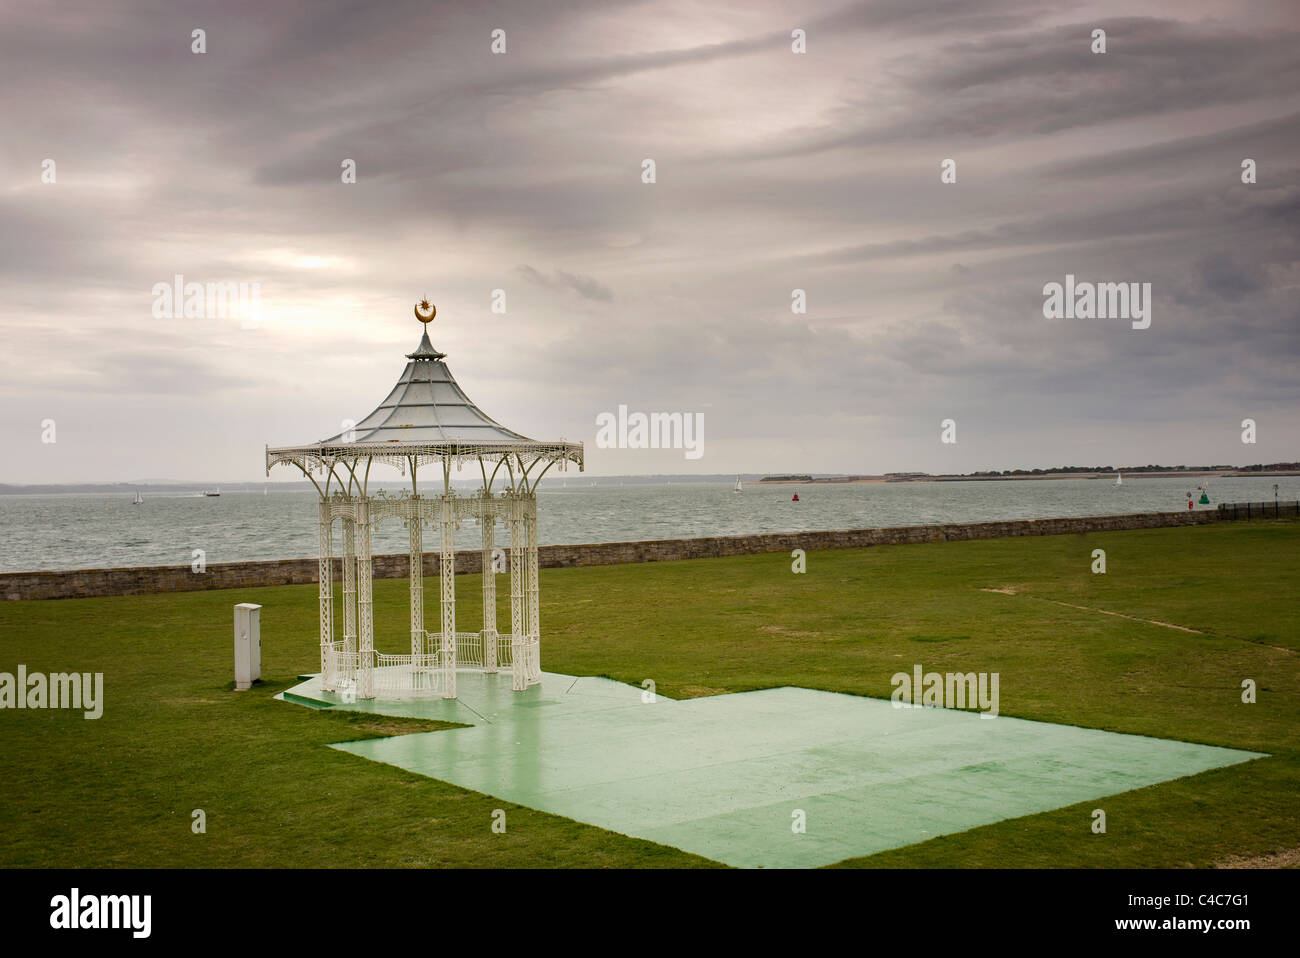 Southsea bandstand overlooking Portsmouth Harbour - Stock Image